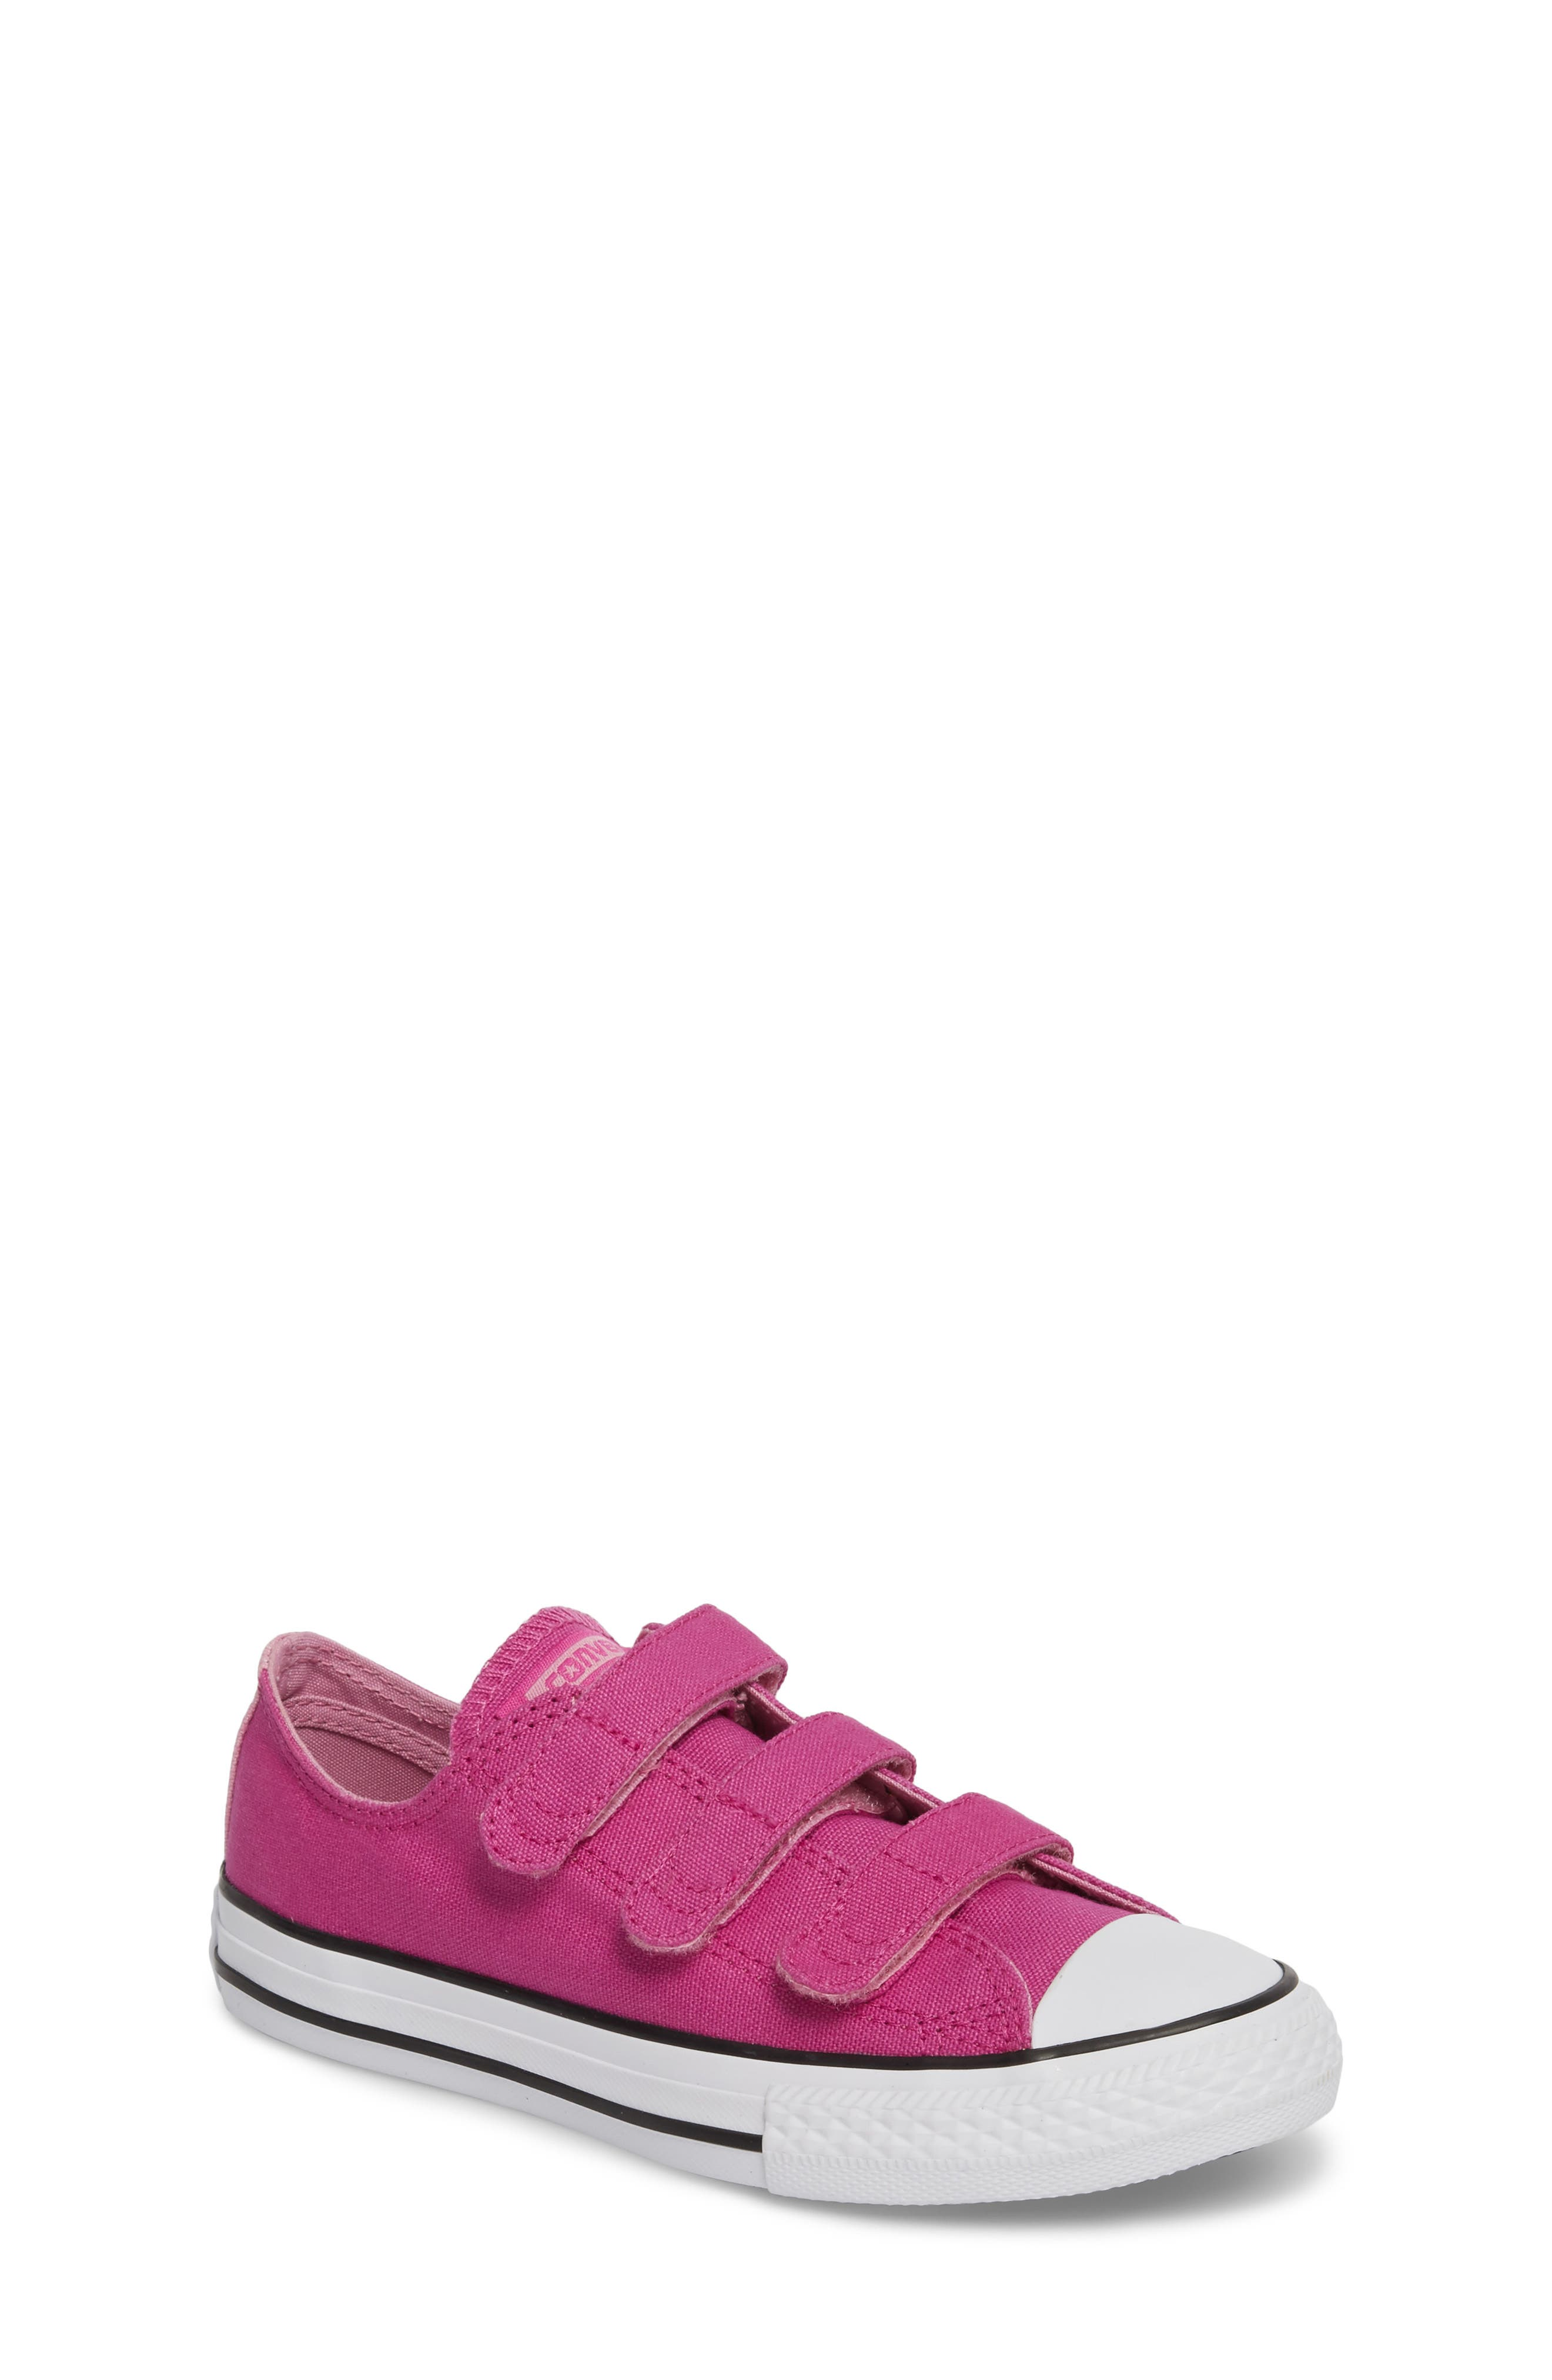 Chuck Taylor<sup>®</sup> All Star<sup>®</sup> 3V Low Top Sneaker,                         Main,                         color, 650